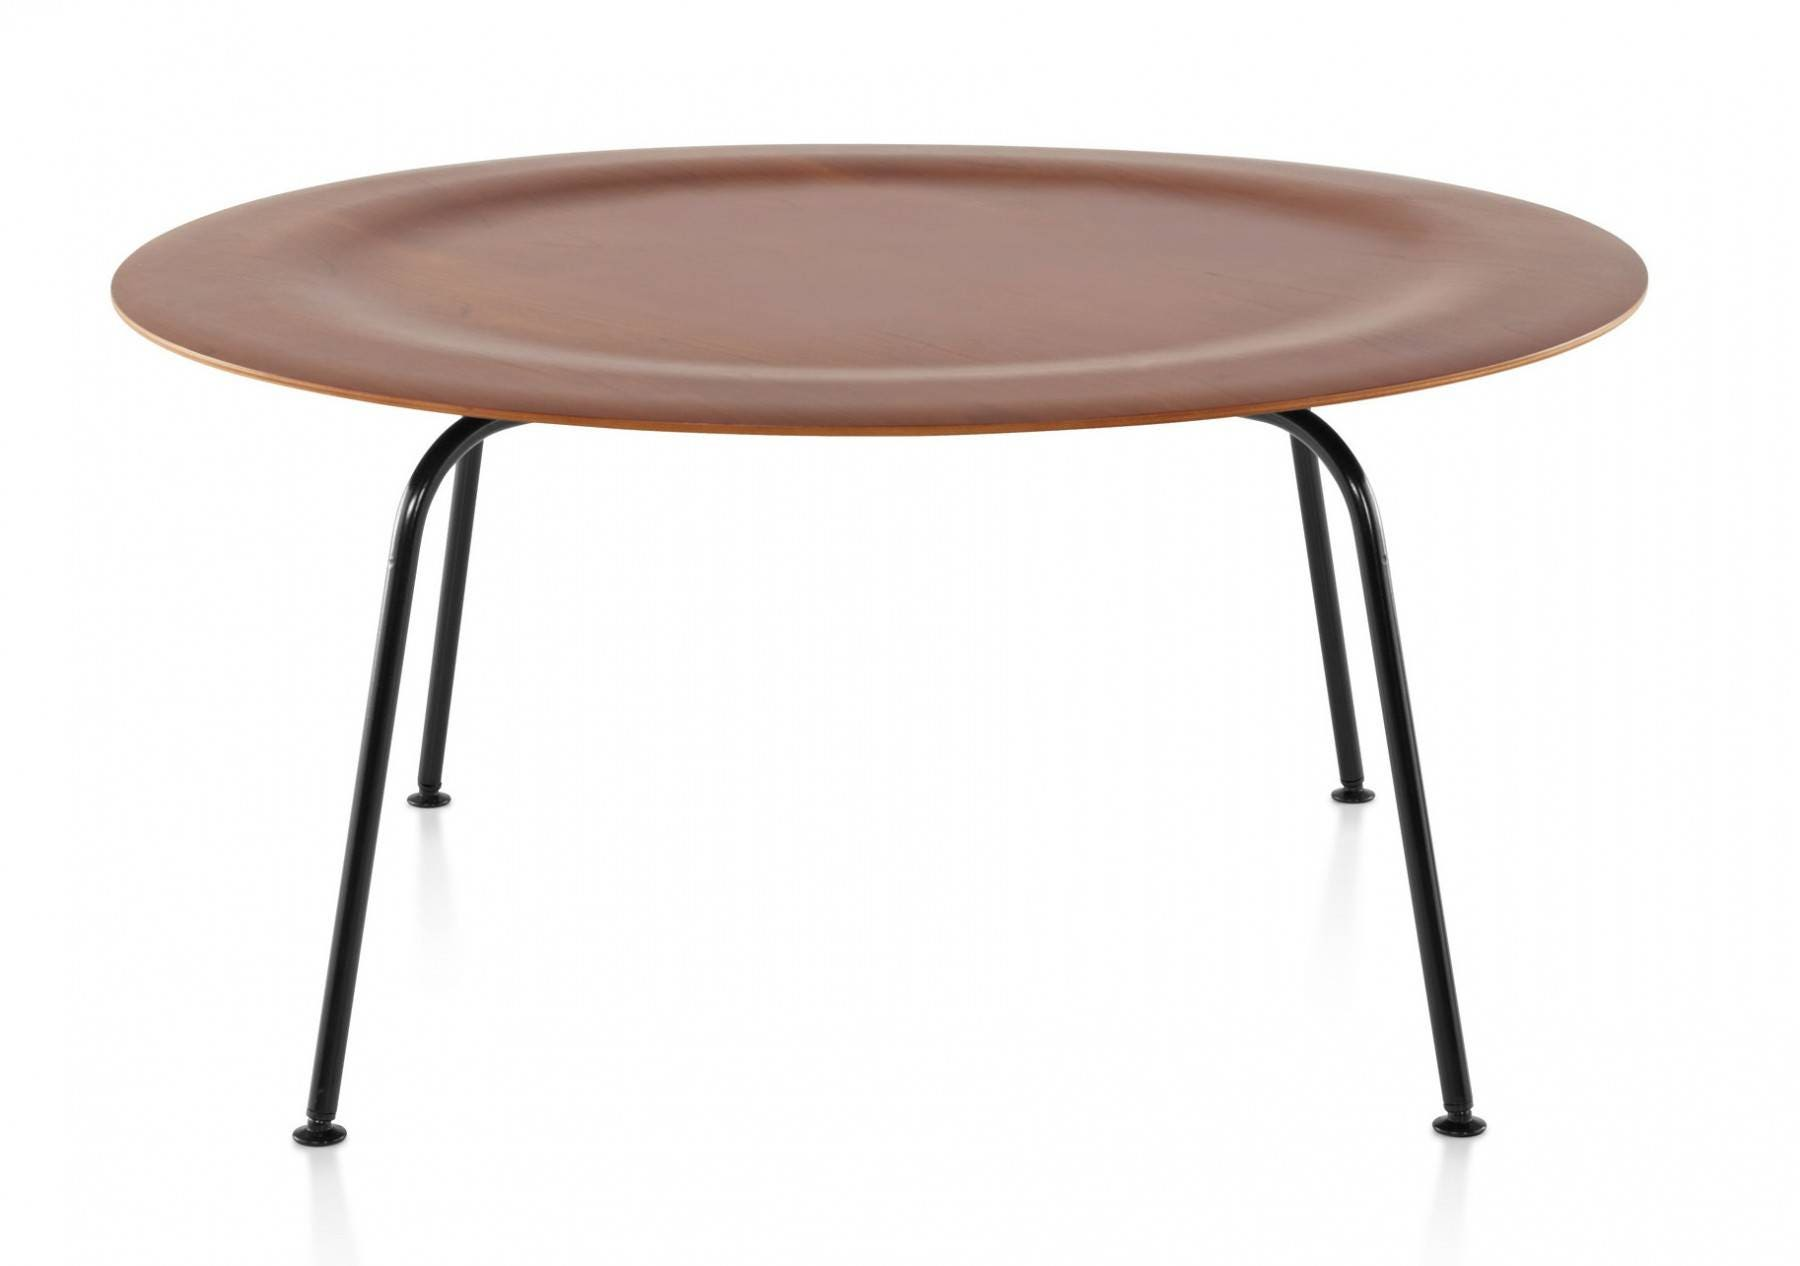 Herman miller eames molded plywood coffee table metal - Herman miller eames table ...